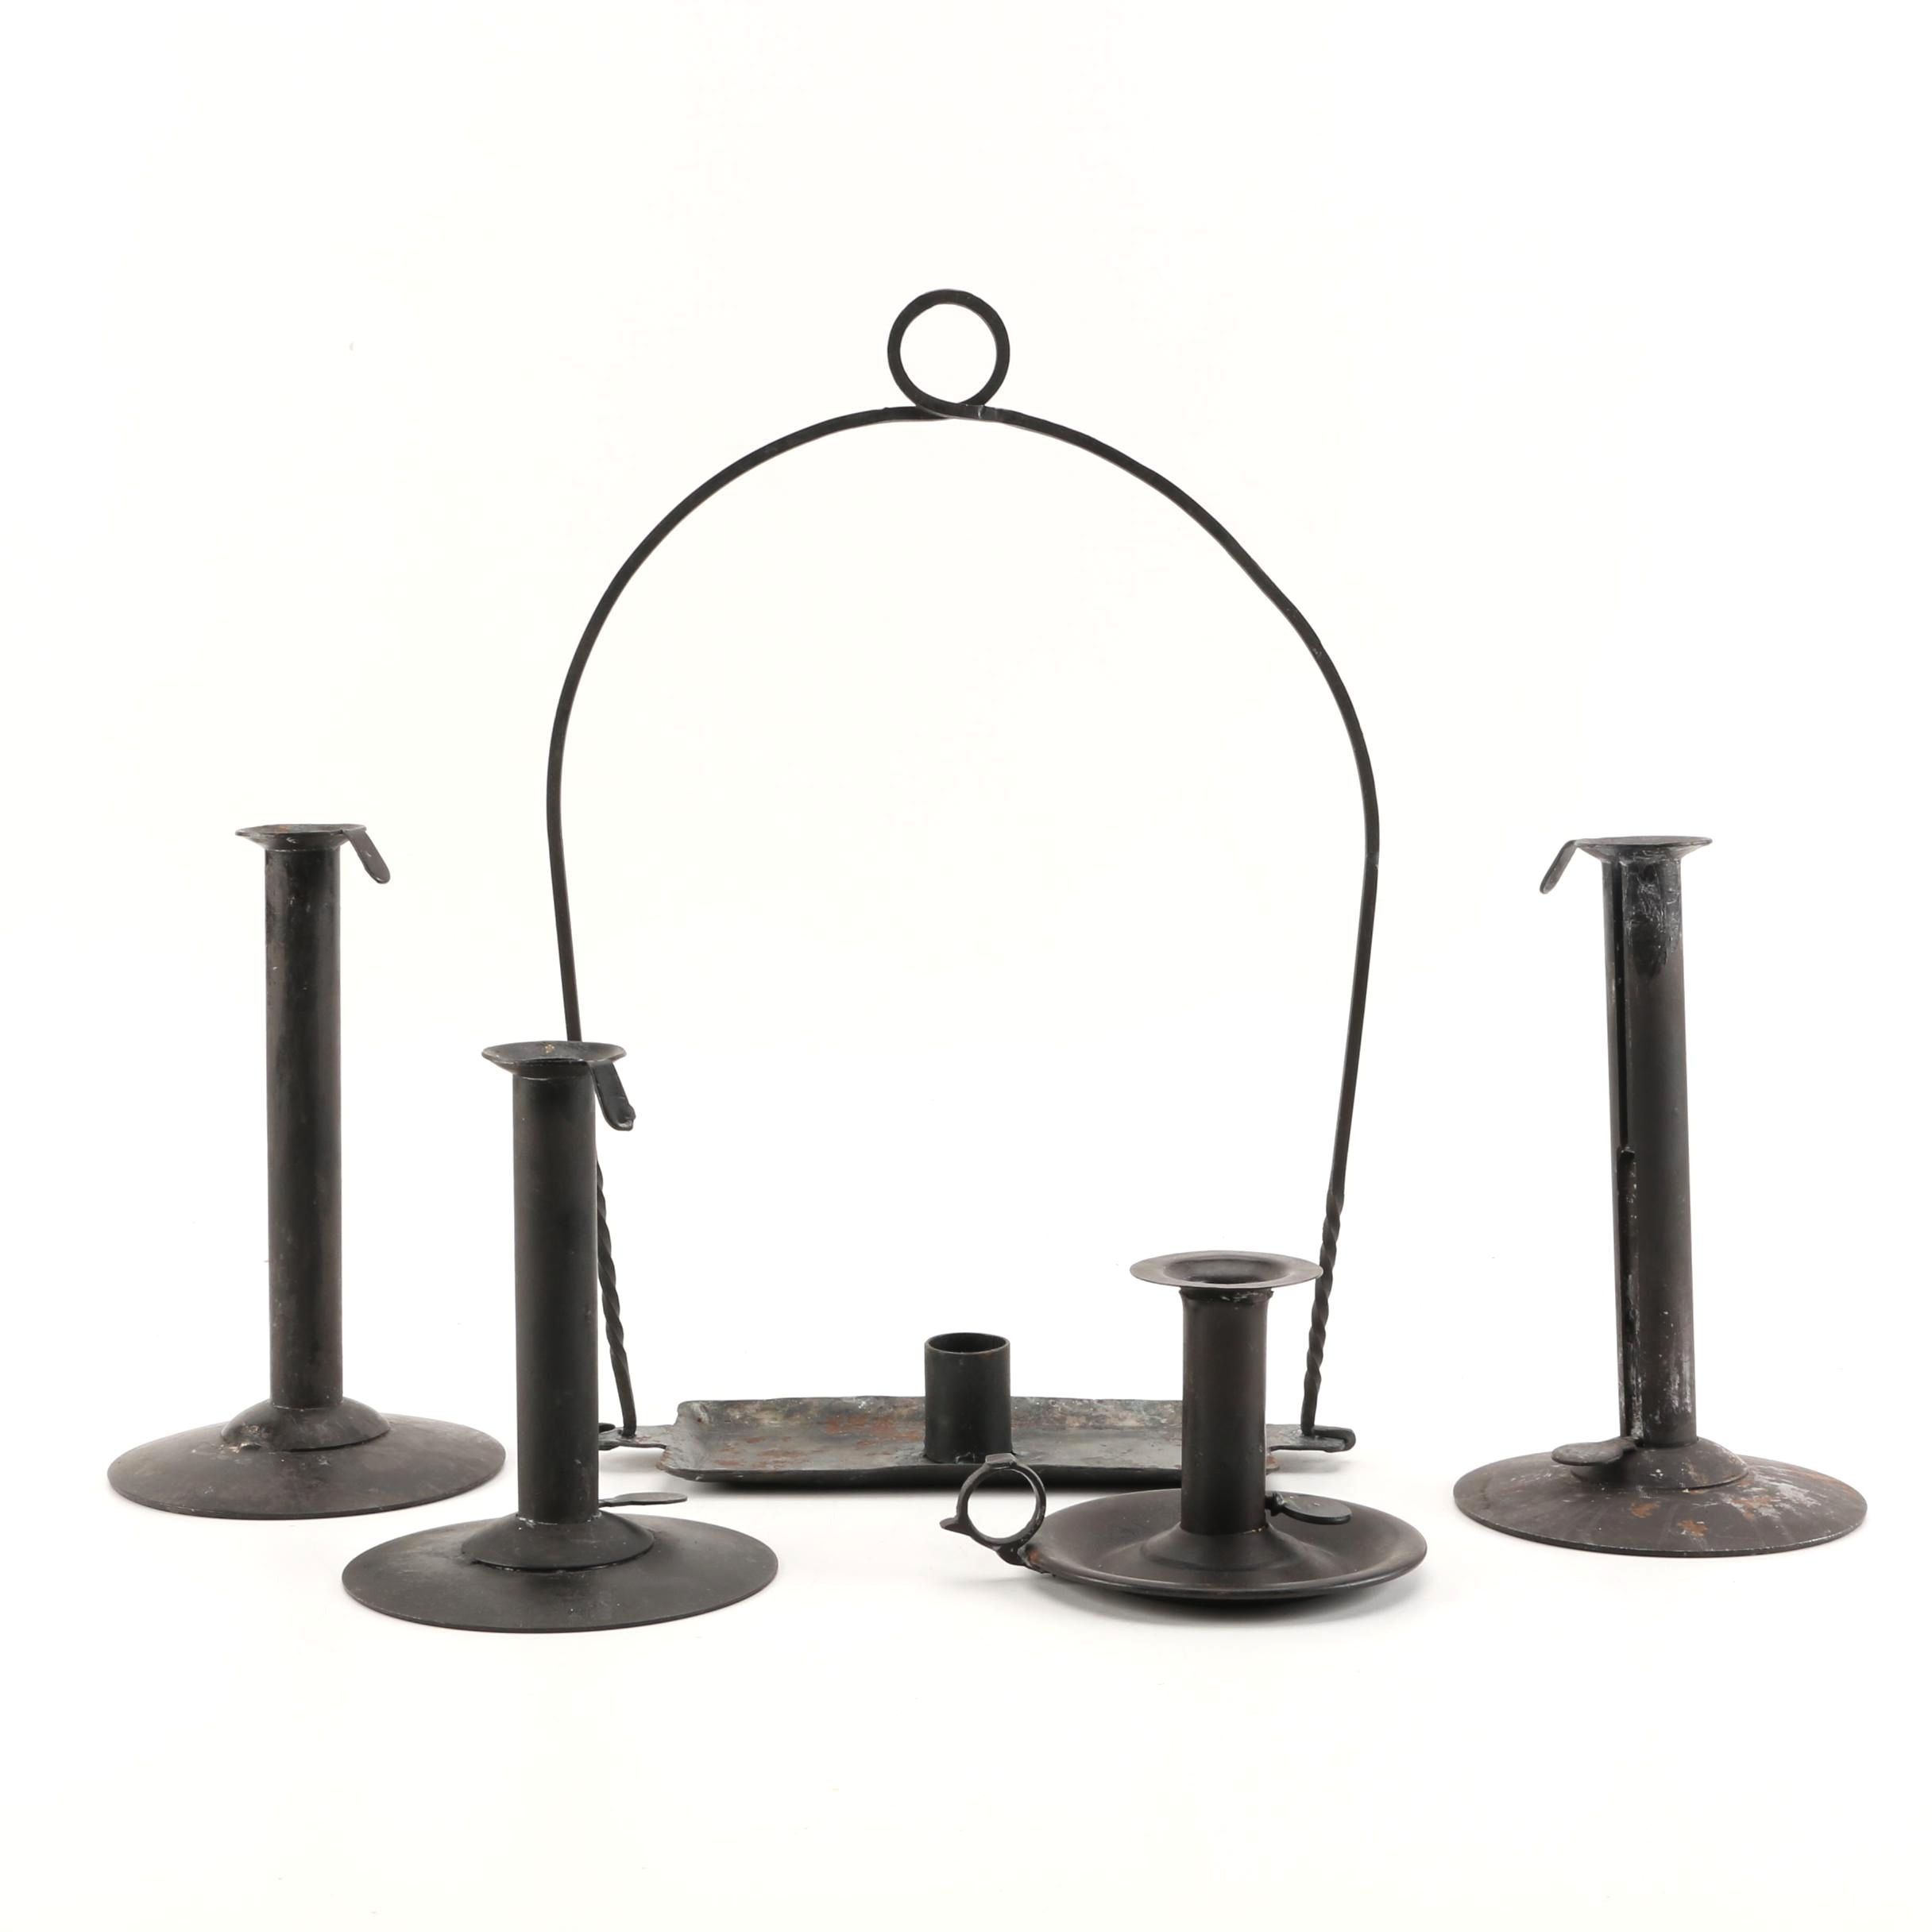 Antique Hogscraper Candle Holders with Hanging Candleholder